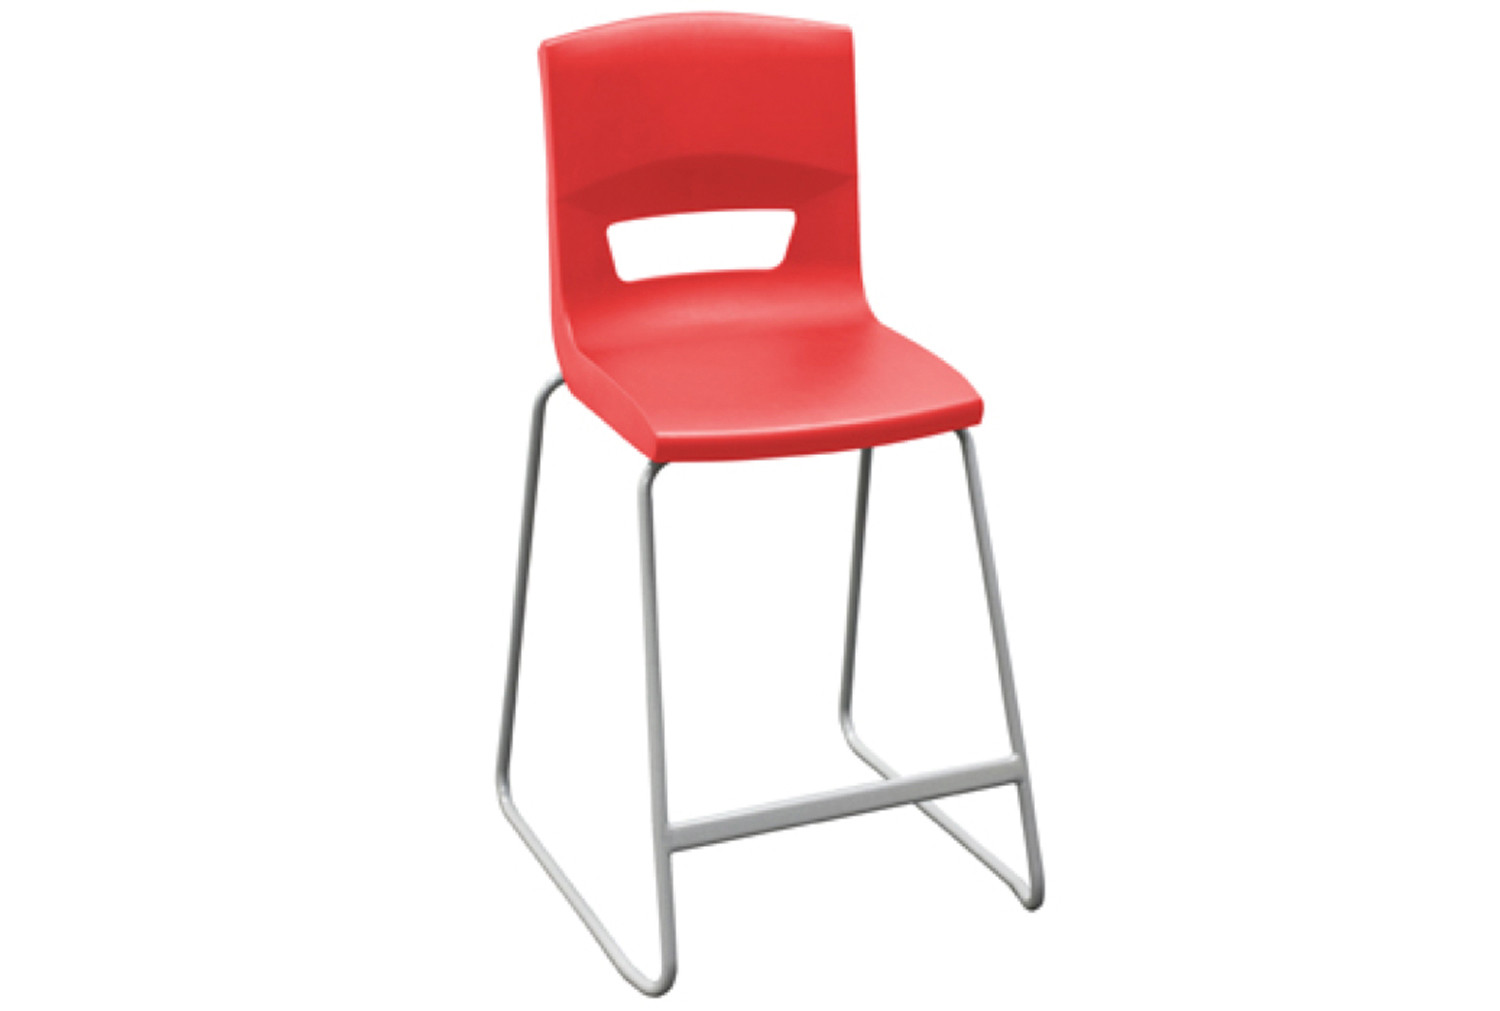 10 X Yellow High Classroom Chair. Find Loads More Colours, Materials & Styles Online - Buy Office Furniture Online